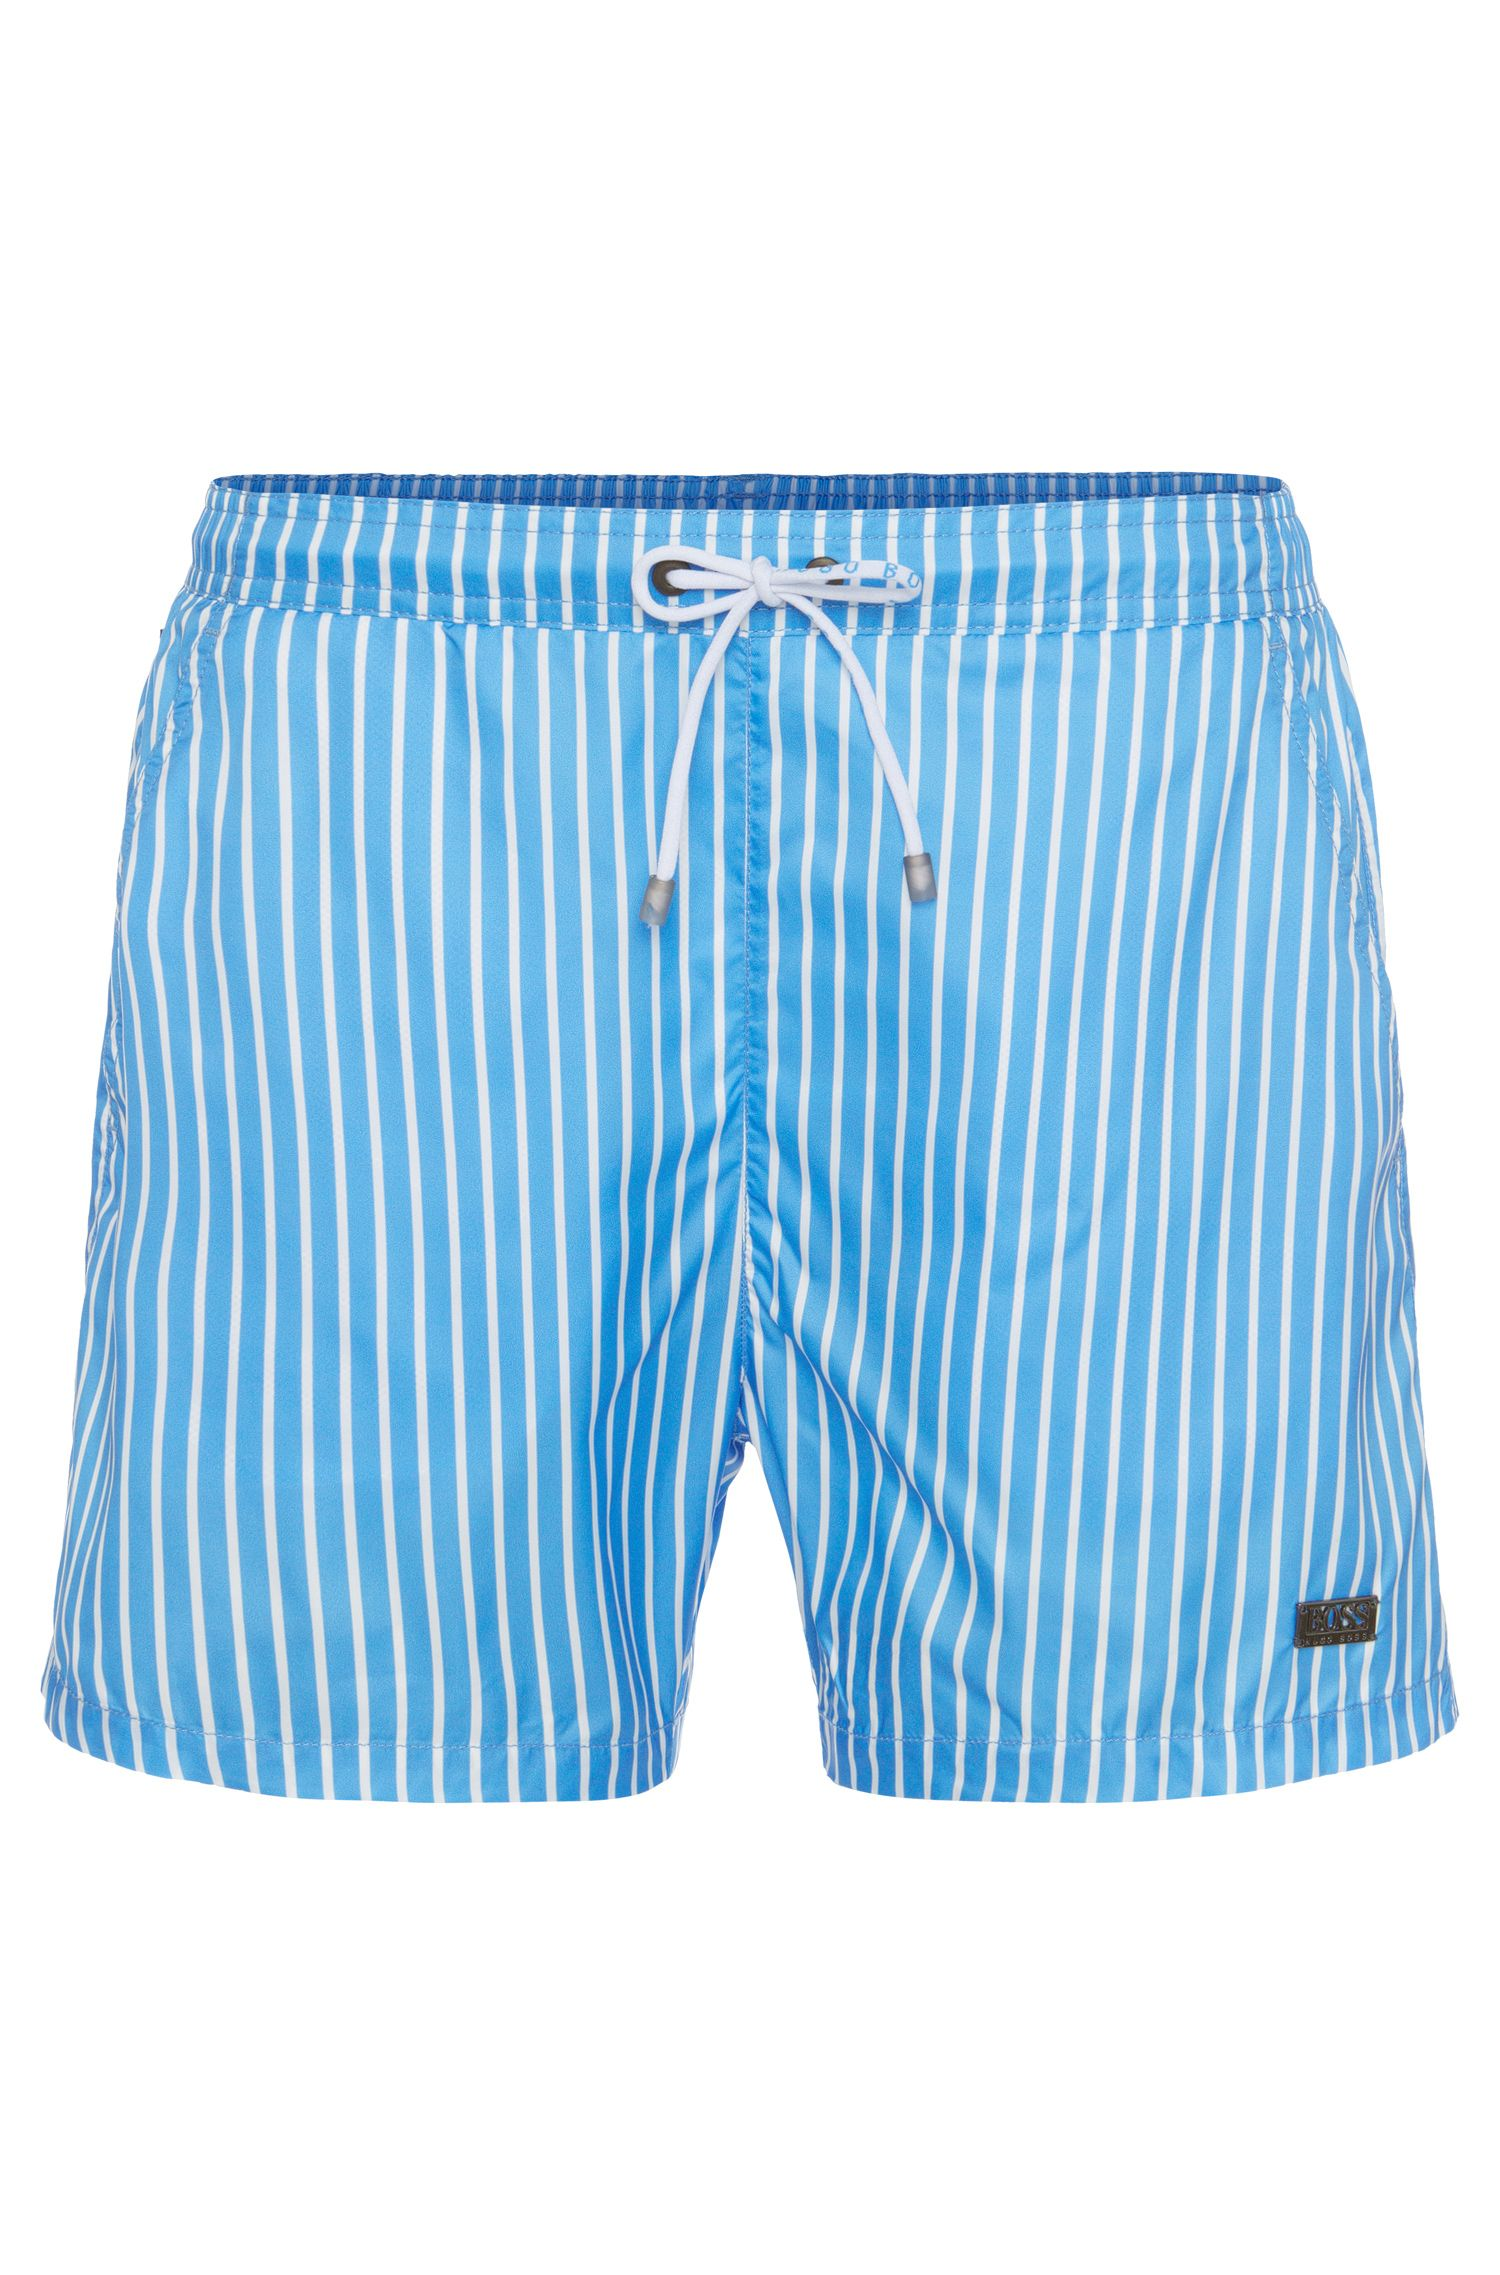 Striped Swim Trunks | Marlin, Open Blue